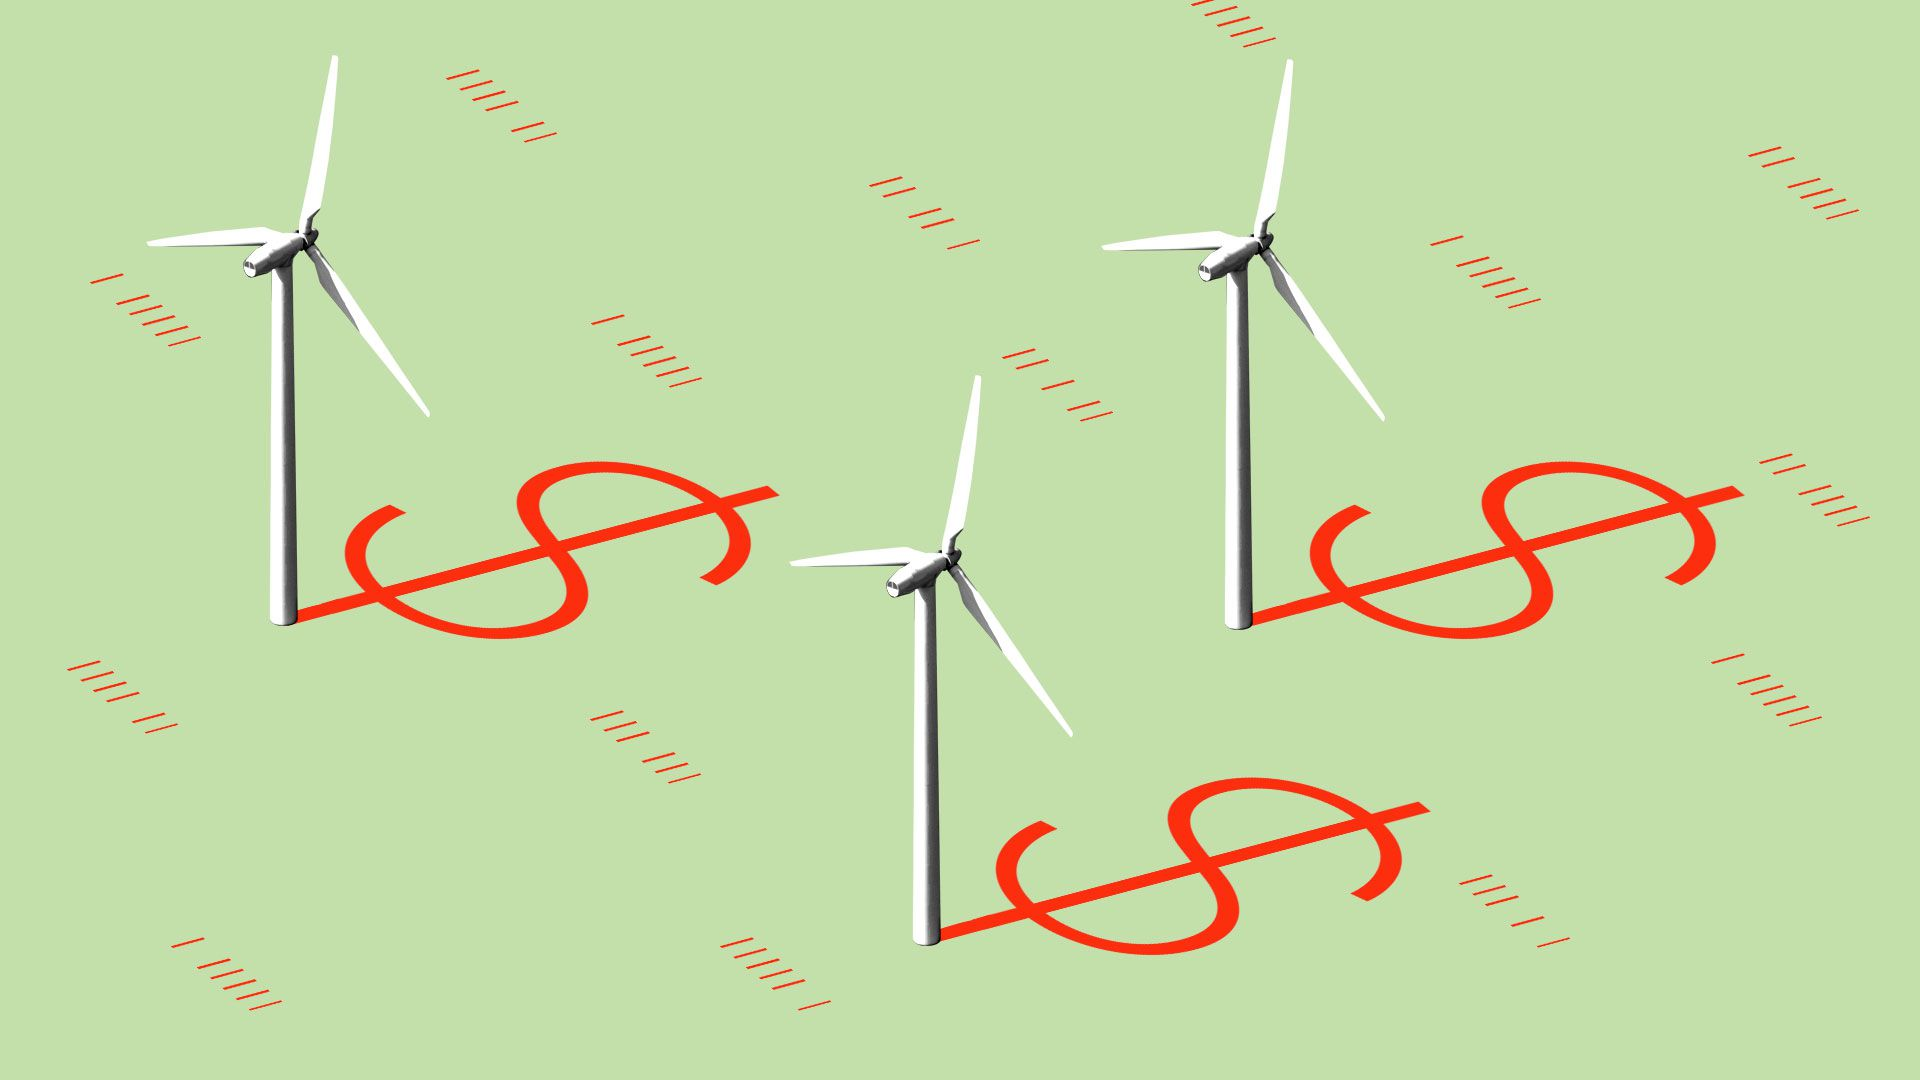 wind turbines in a field with red dollar signs on the ground